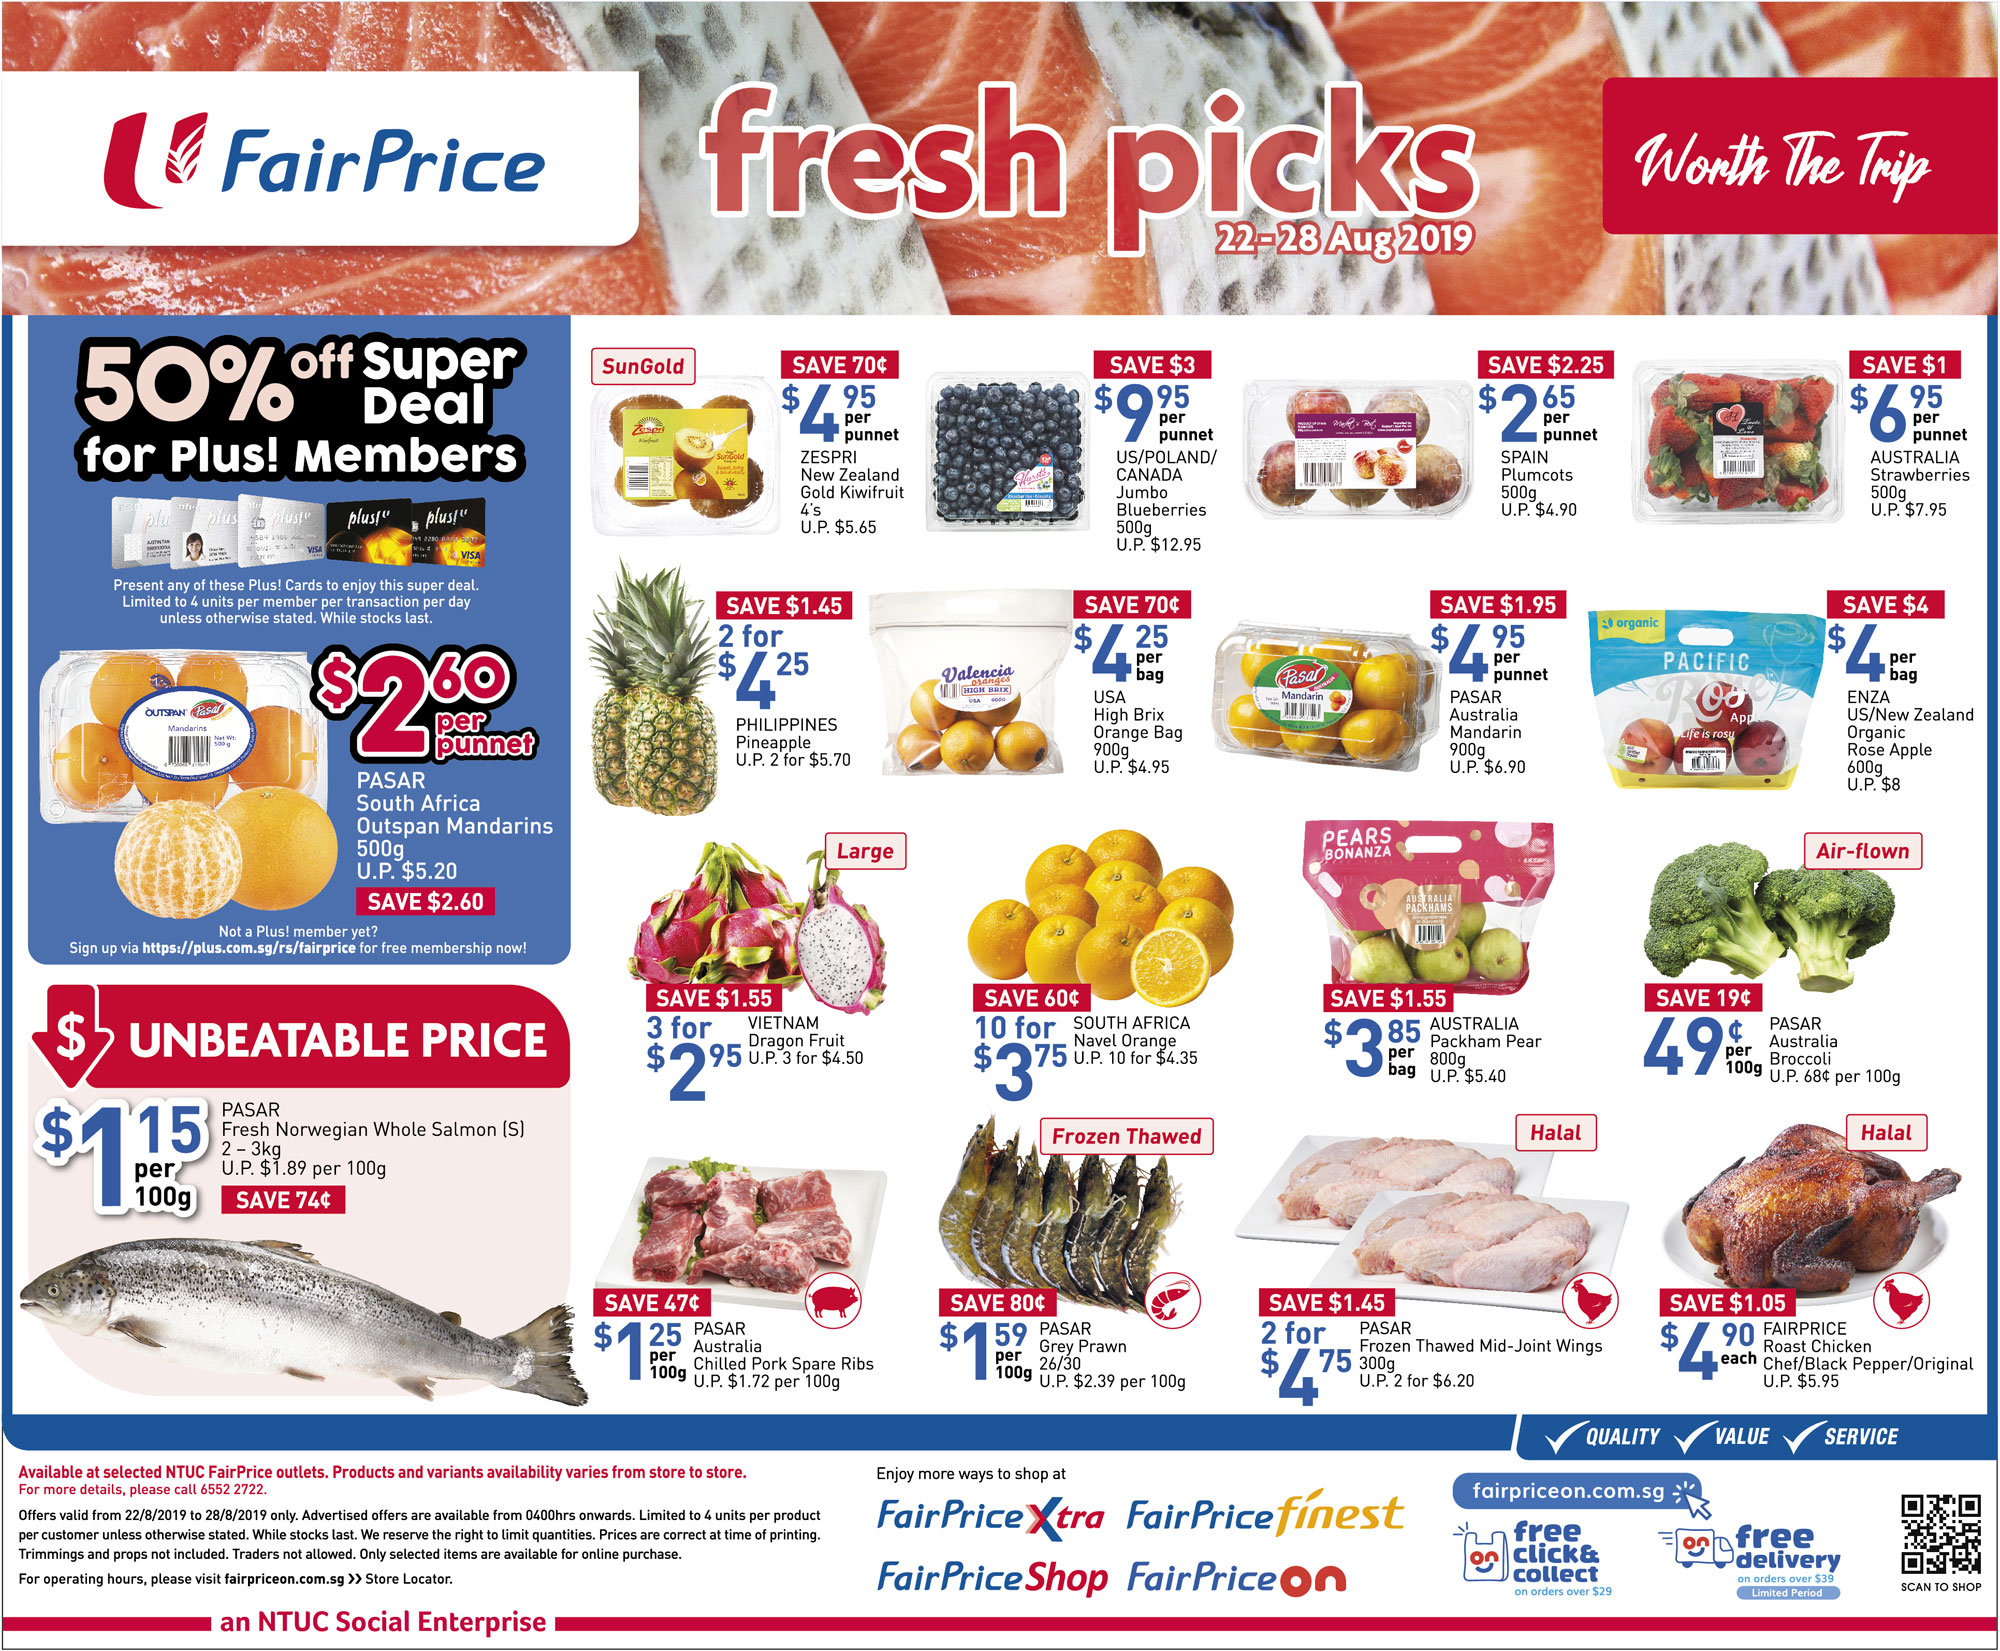 NTUC FairPrice Singapore Your Weekly Saver Promotion 22-28 Aug 2019 | Why Not Deals 6 & Promotions